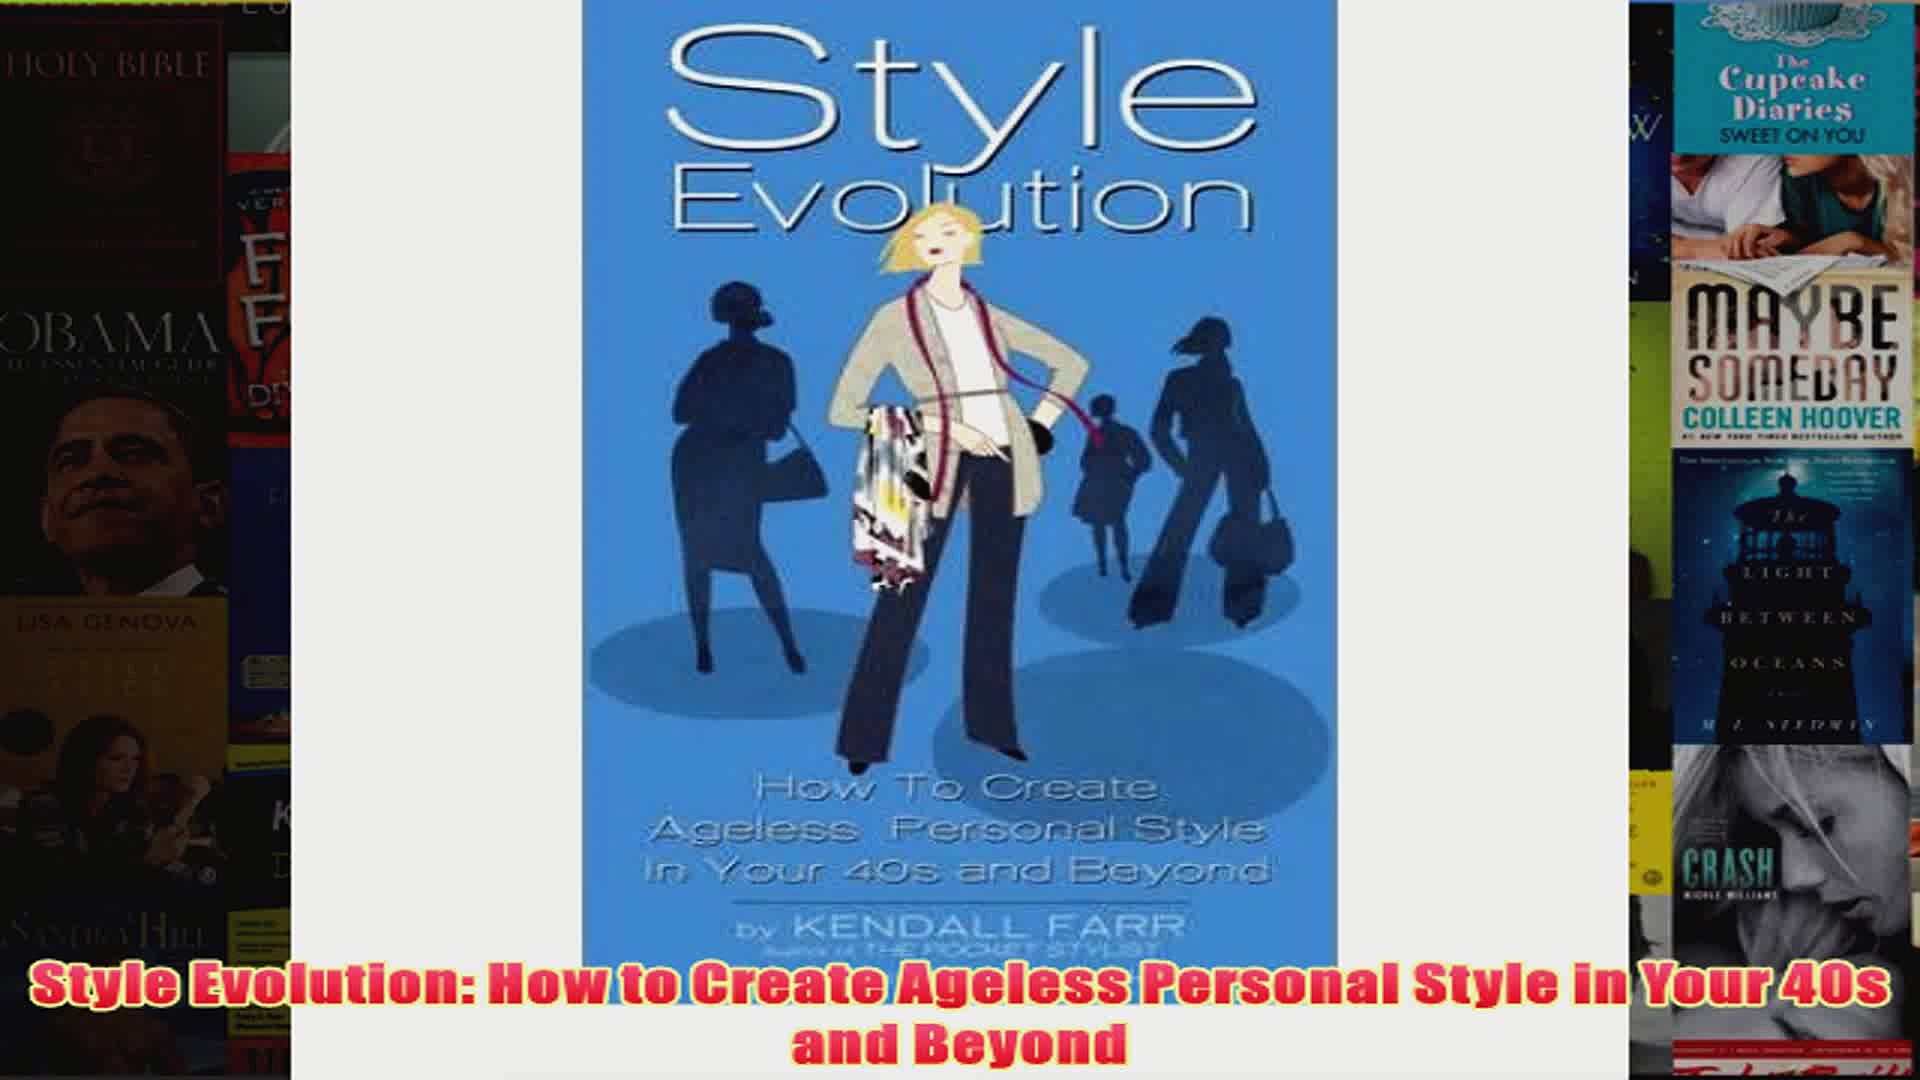 Style Evolution How to Create Ageless Personal Style in Your 40s and Beyond